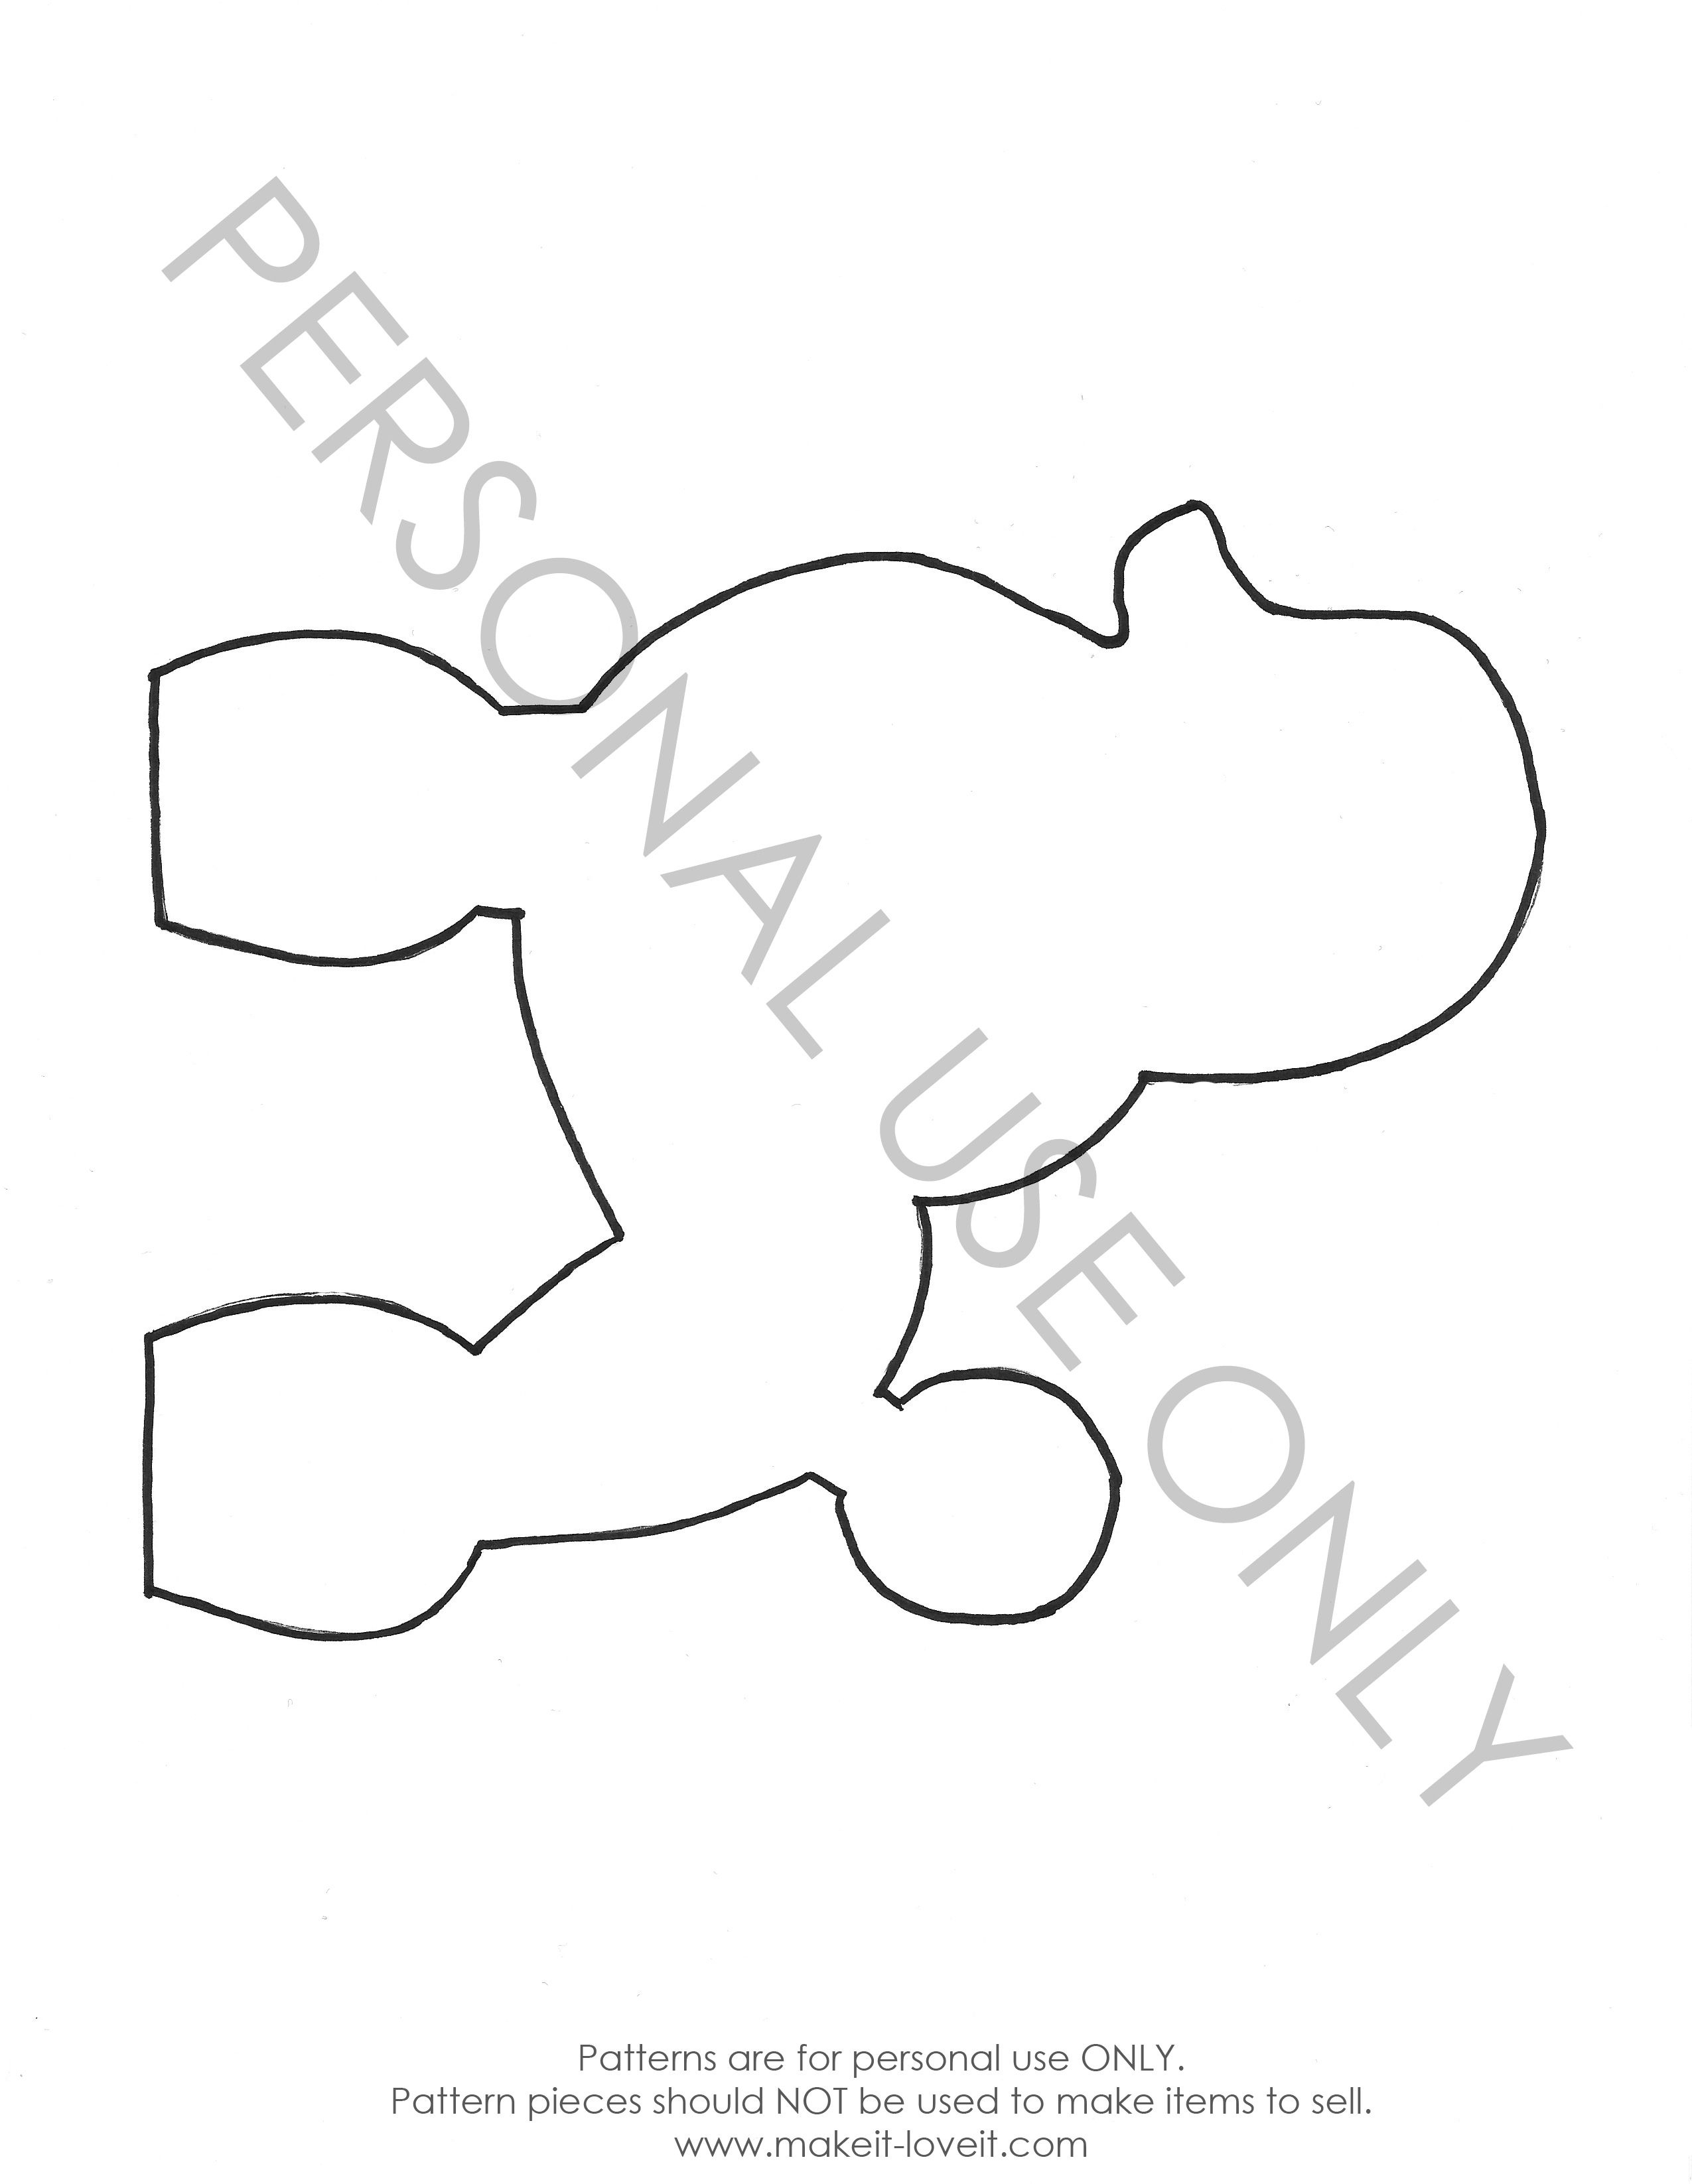 Free Pattern Pieces | Sock Monkeys & Stuffed Animals | Poodle - Free Printable Poodle Template